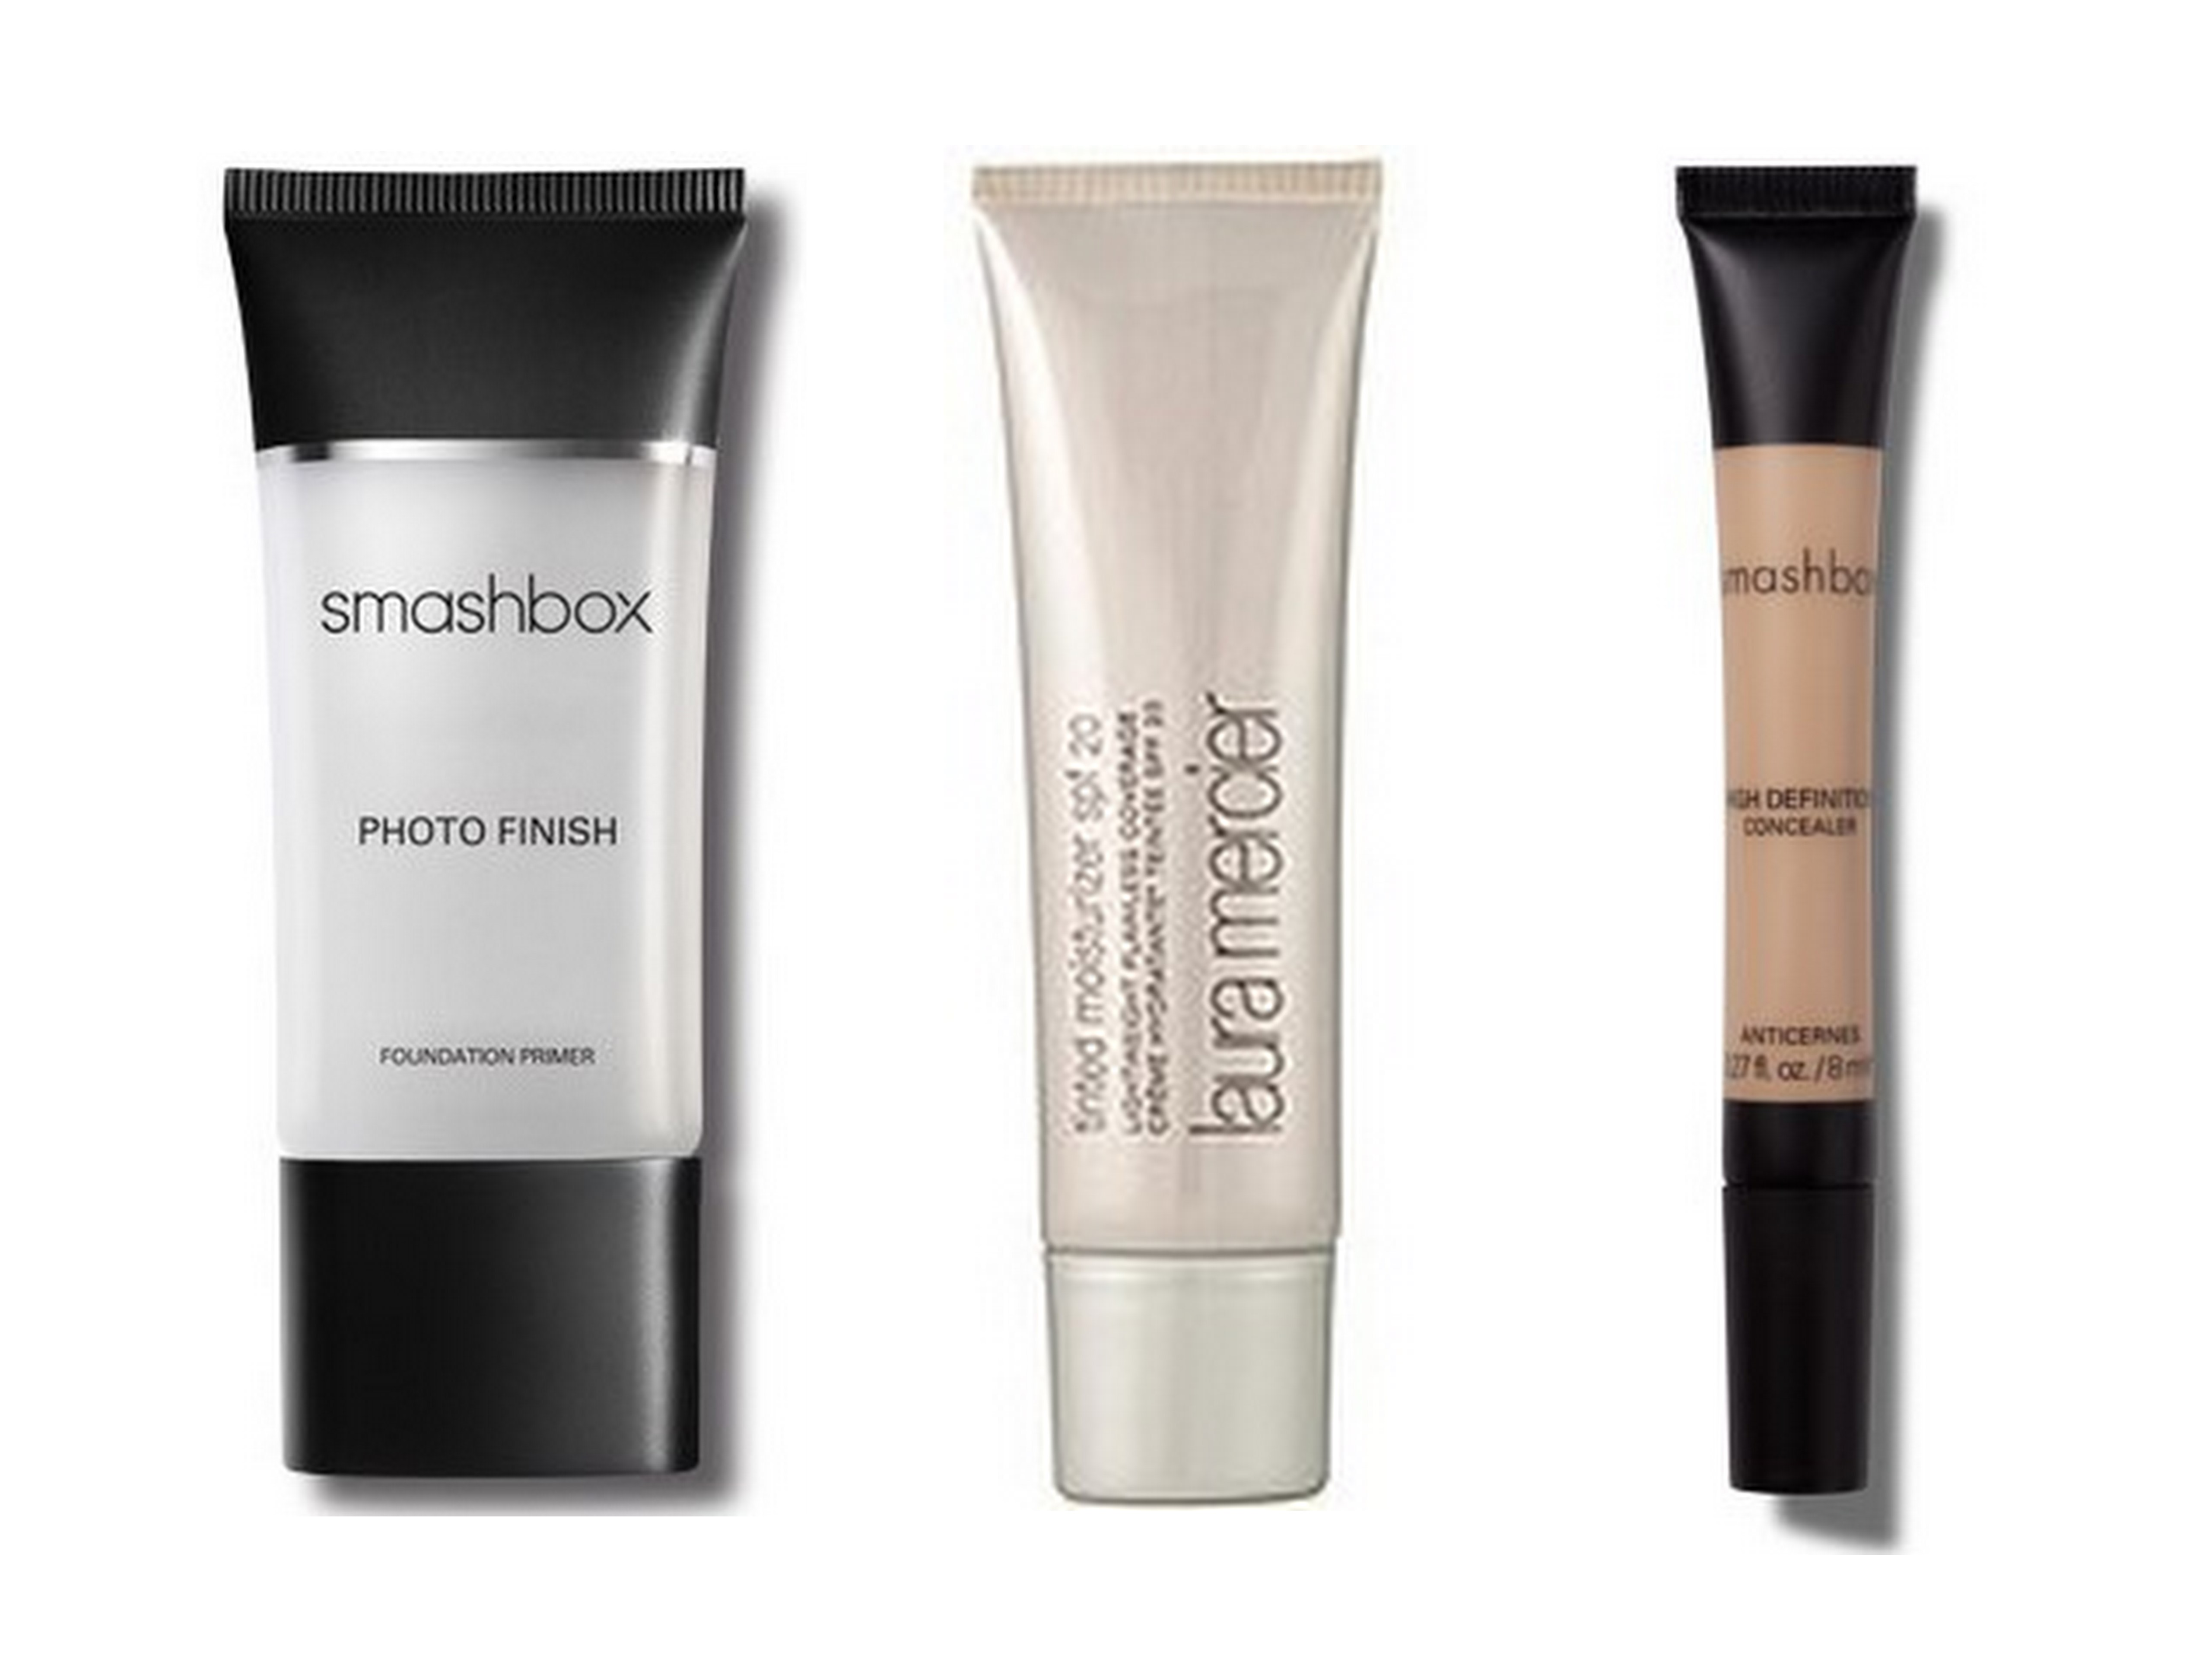 Smashbox Photo Finish Primer and HD Concealer, Laura Mercier Tinted Moisturizer